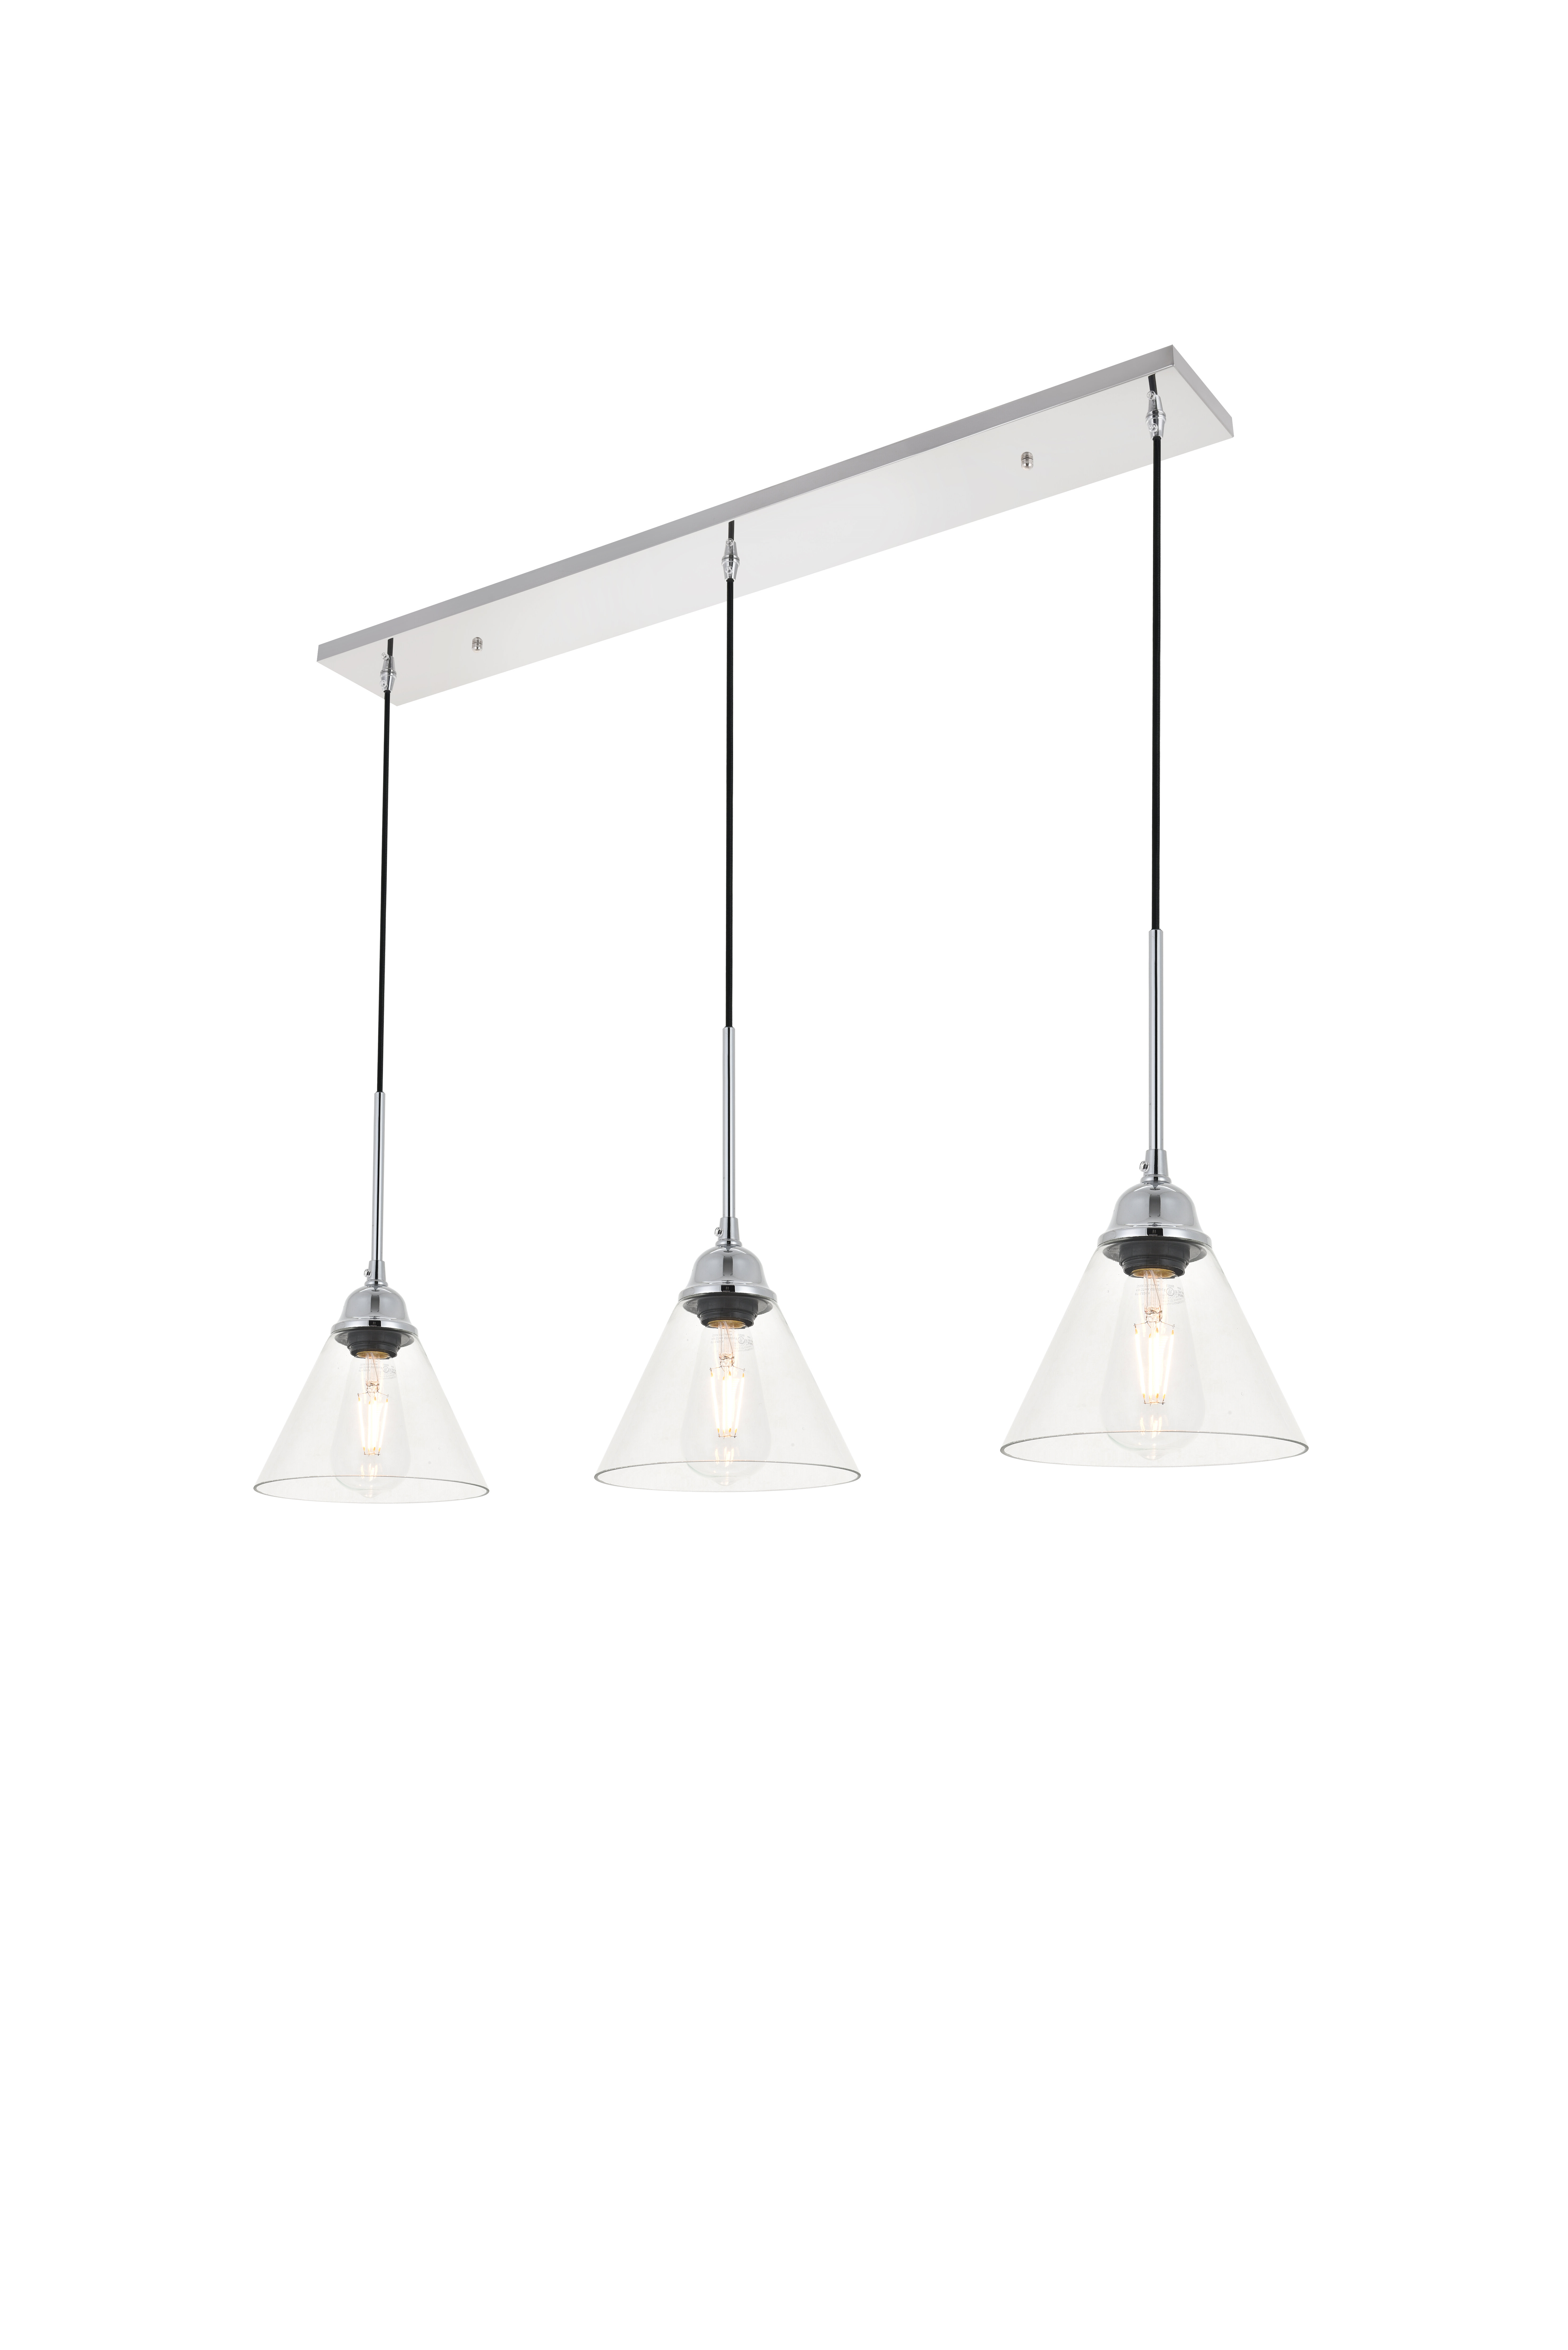 Rockland 4 Light Geometric Pendants For Best And Newest Hallsville 3 Light Kitchen Island Pendant (View 13 of 20)